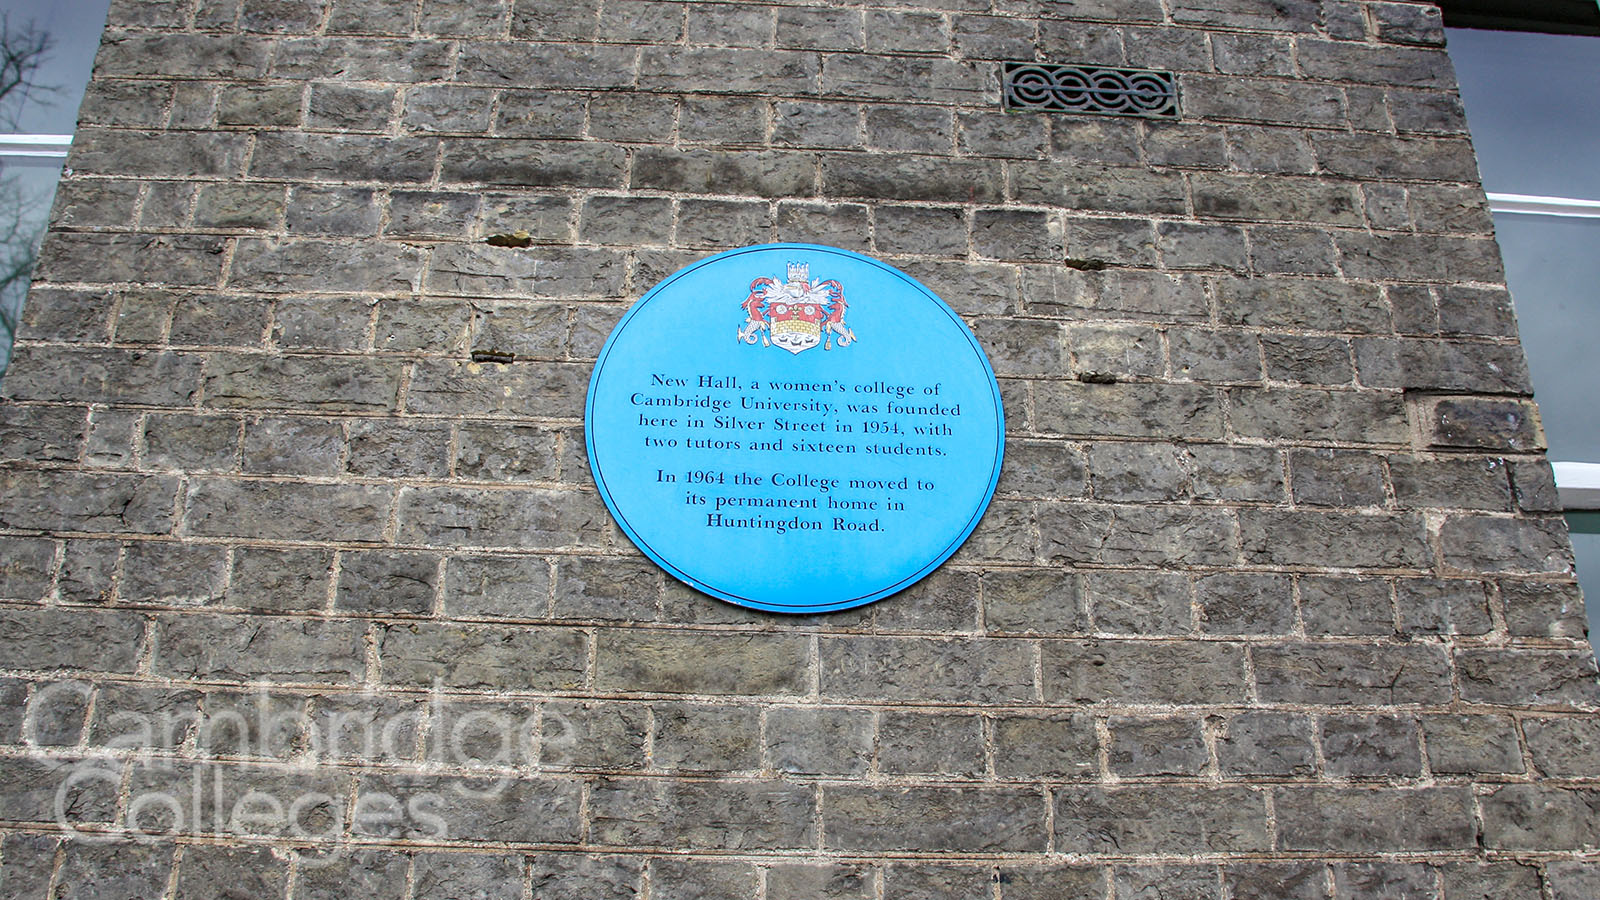 A blue plaque commemorates the original site of New Hall